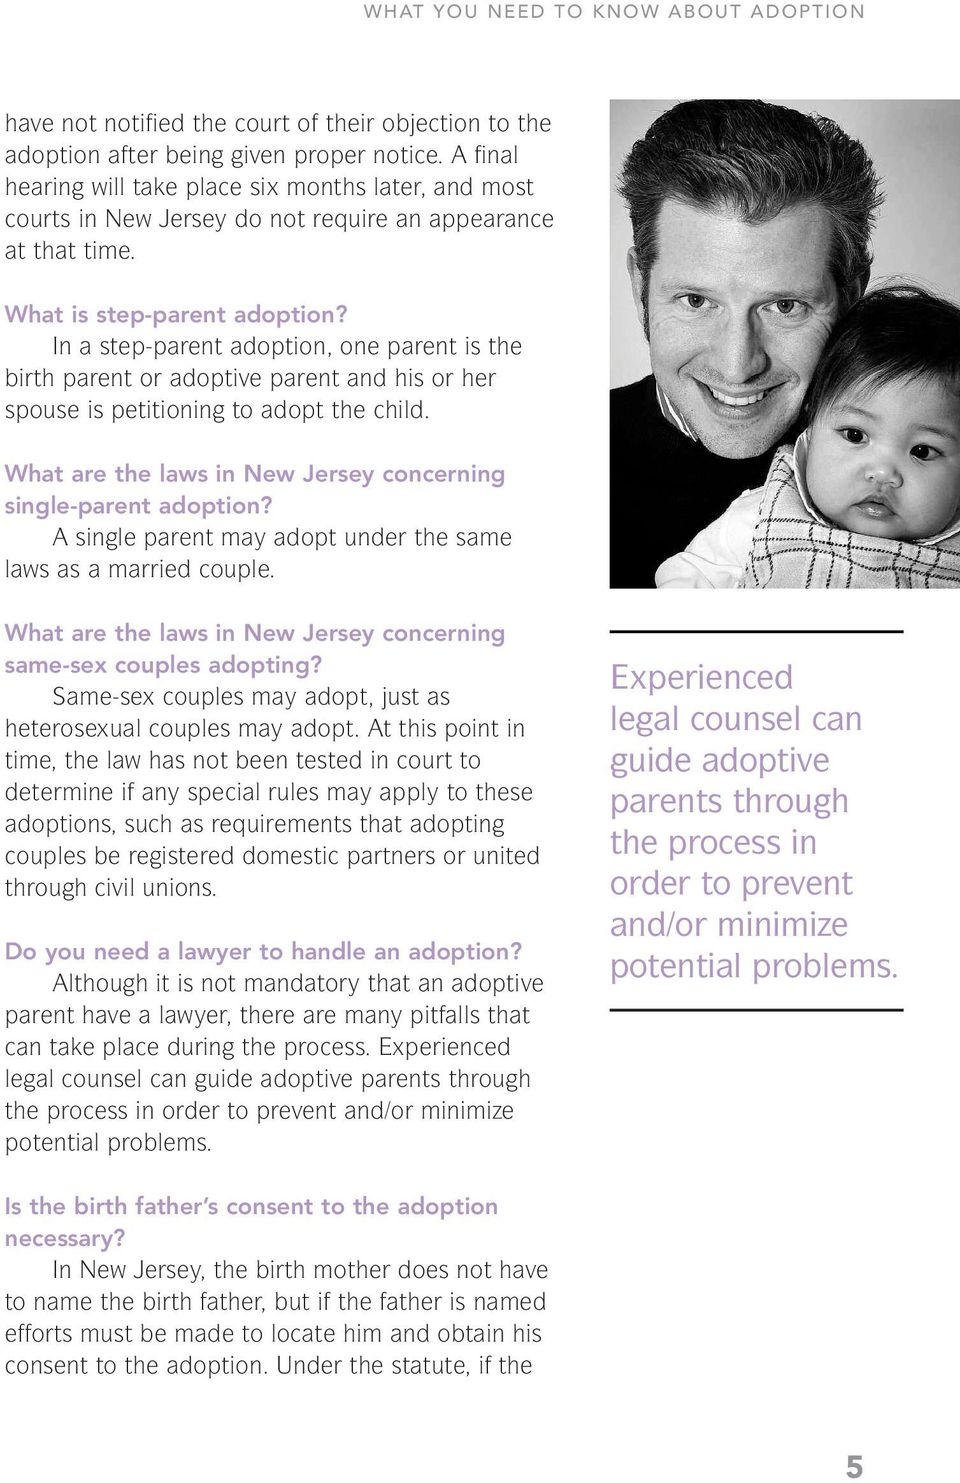 In a step-parent adoption, one parent is the birth parent or adoptive parent and his or her spouse is petitioning to adopt the child. What are the laws in New Jersey concerning single-parent adoption?